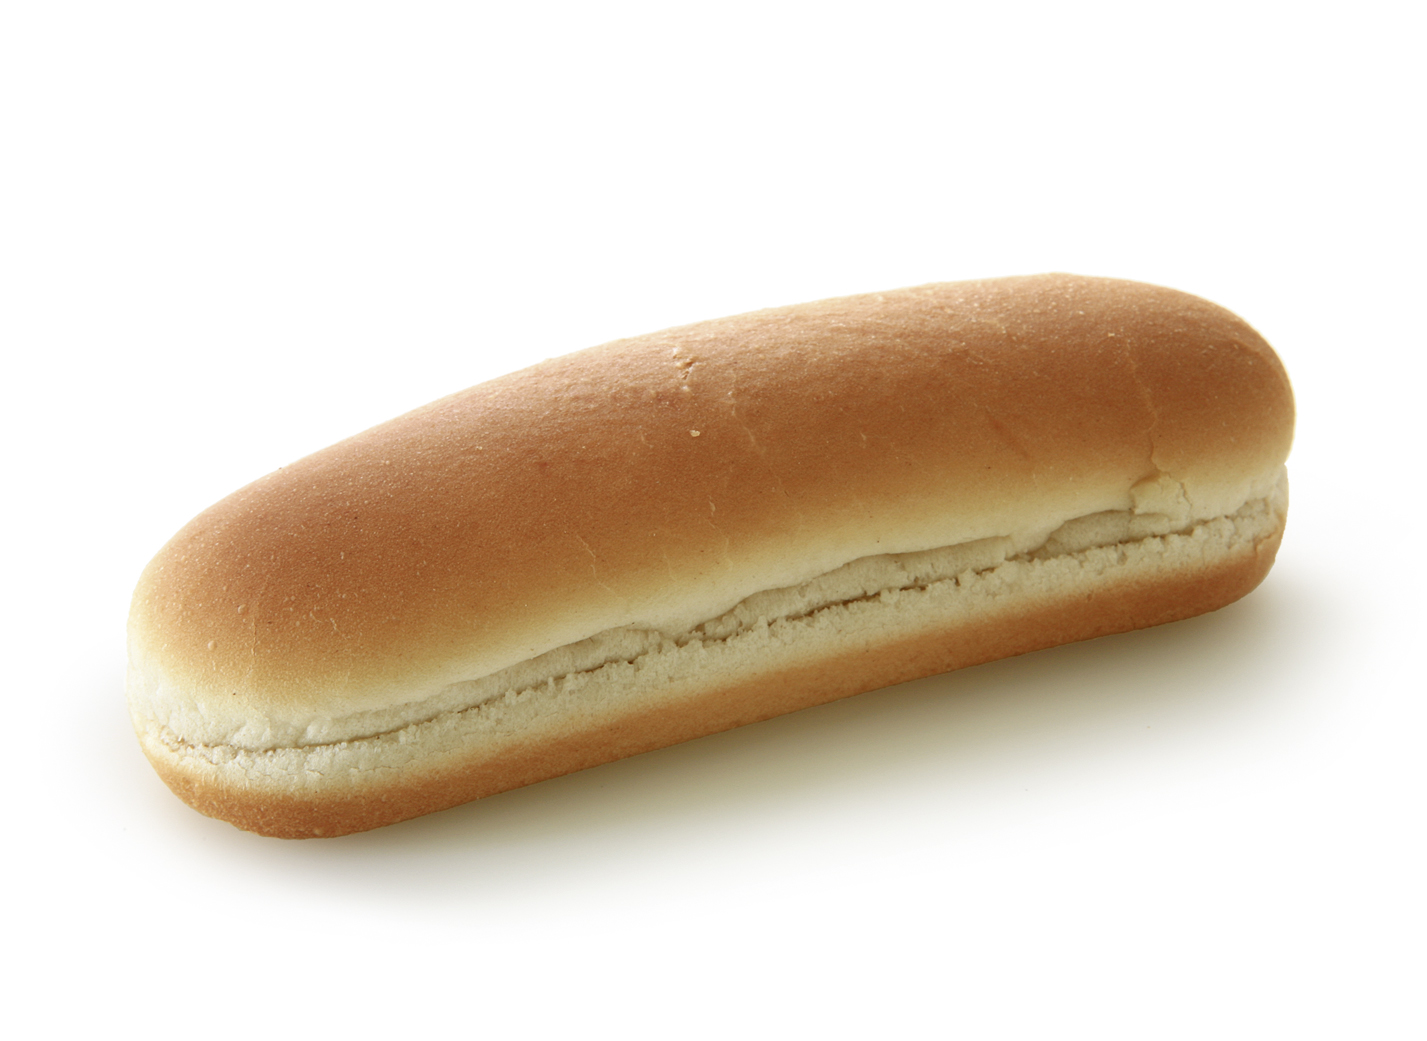 Hot Dog natural - Wheat roll/ traditional shape/ thaw only/ measures: 14.5x4.7cm